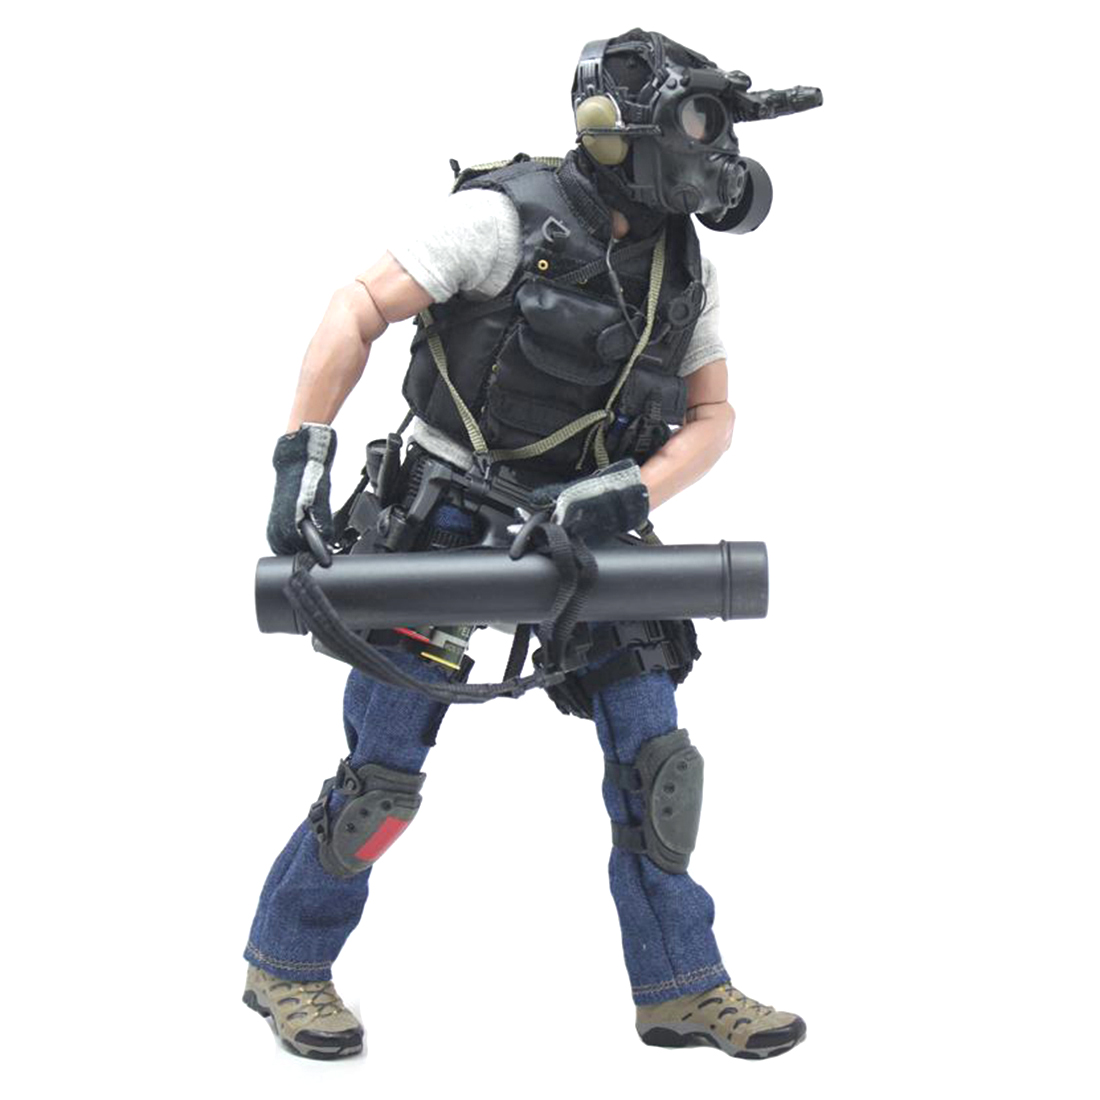 veryhot-1-6-scale-breaker-clothing-equipment-for-12-inch-action-figure-soldier-model-kits-for-kidswithout-head-sculpt-and-body